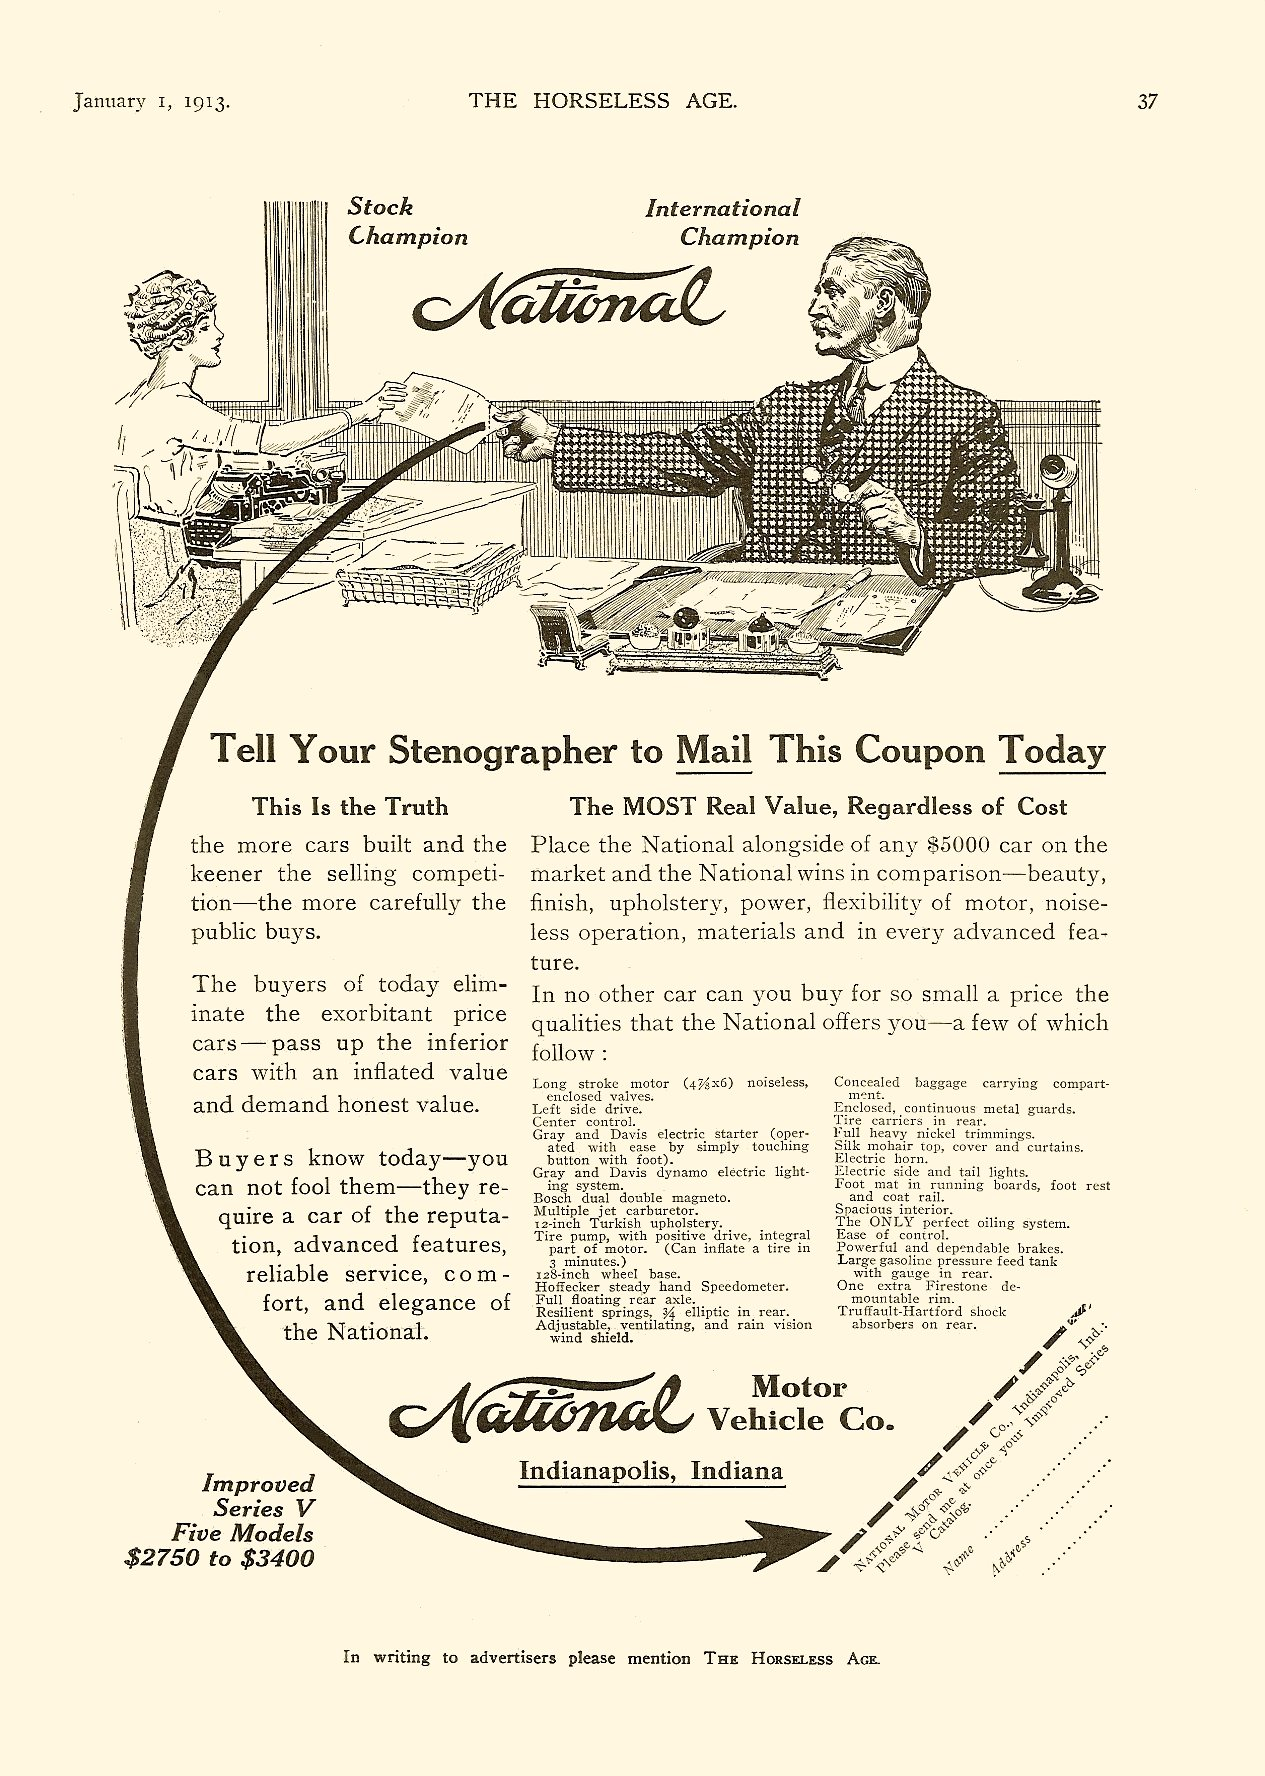 1913 1 1 NATIONAL Improved Series V, 5 Models Tell Your Stenographer to Mail This Coupon Today THE HORSELESS AGE January 1, 1913 Vol. 31 No. 1 9″x12″ page 37